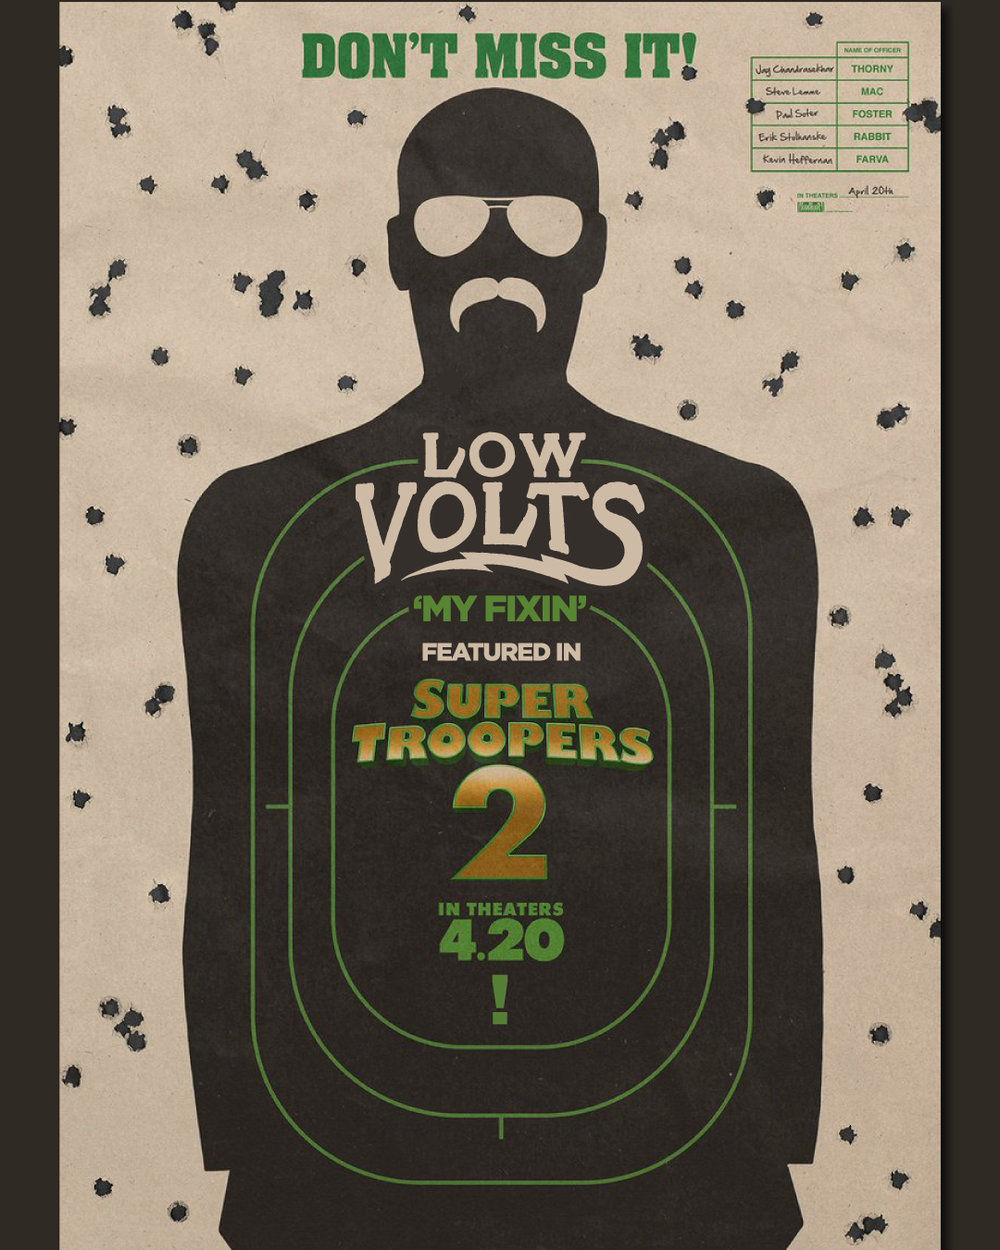 Low-Volts_SuperTroopers2.jpg